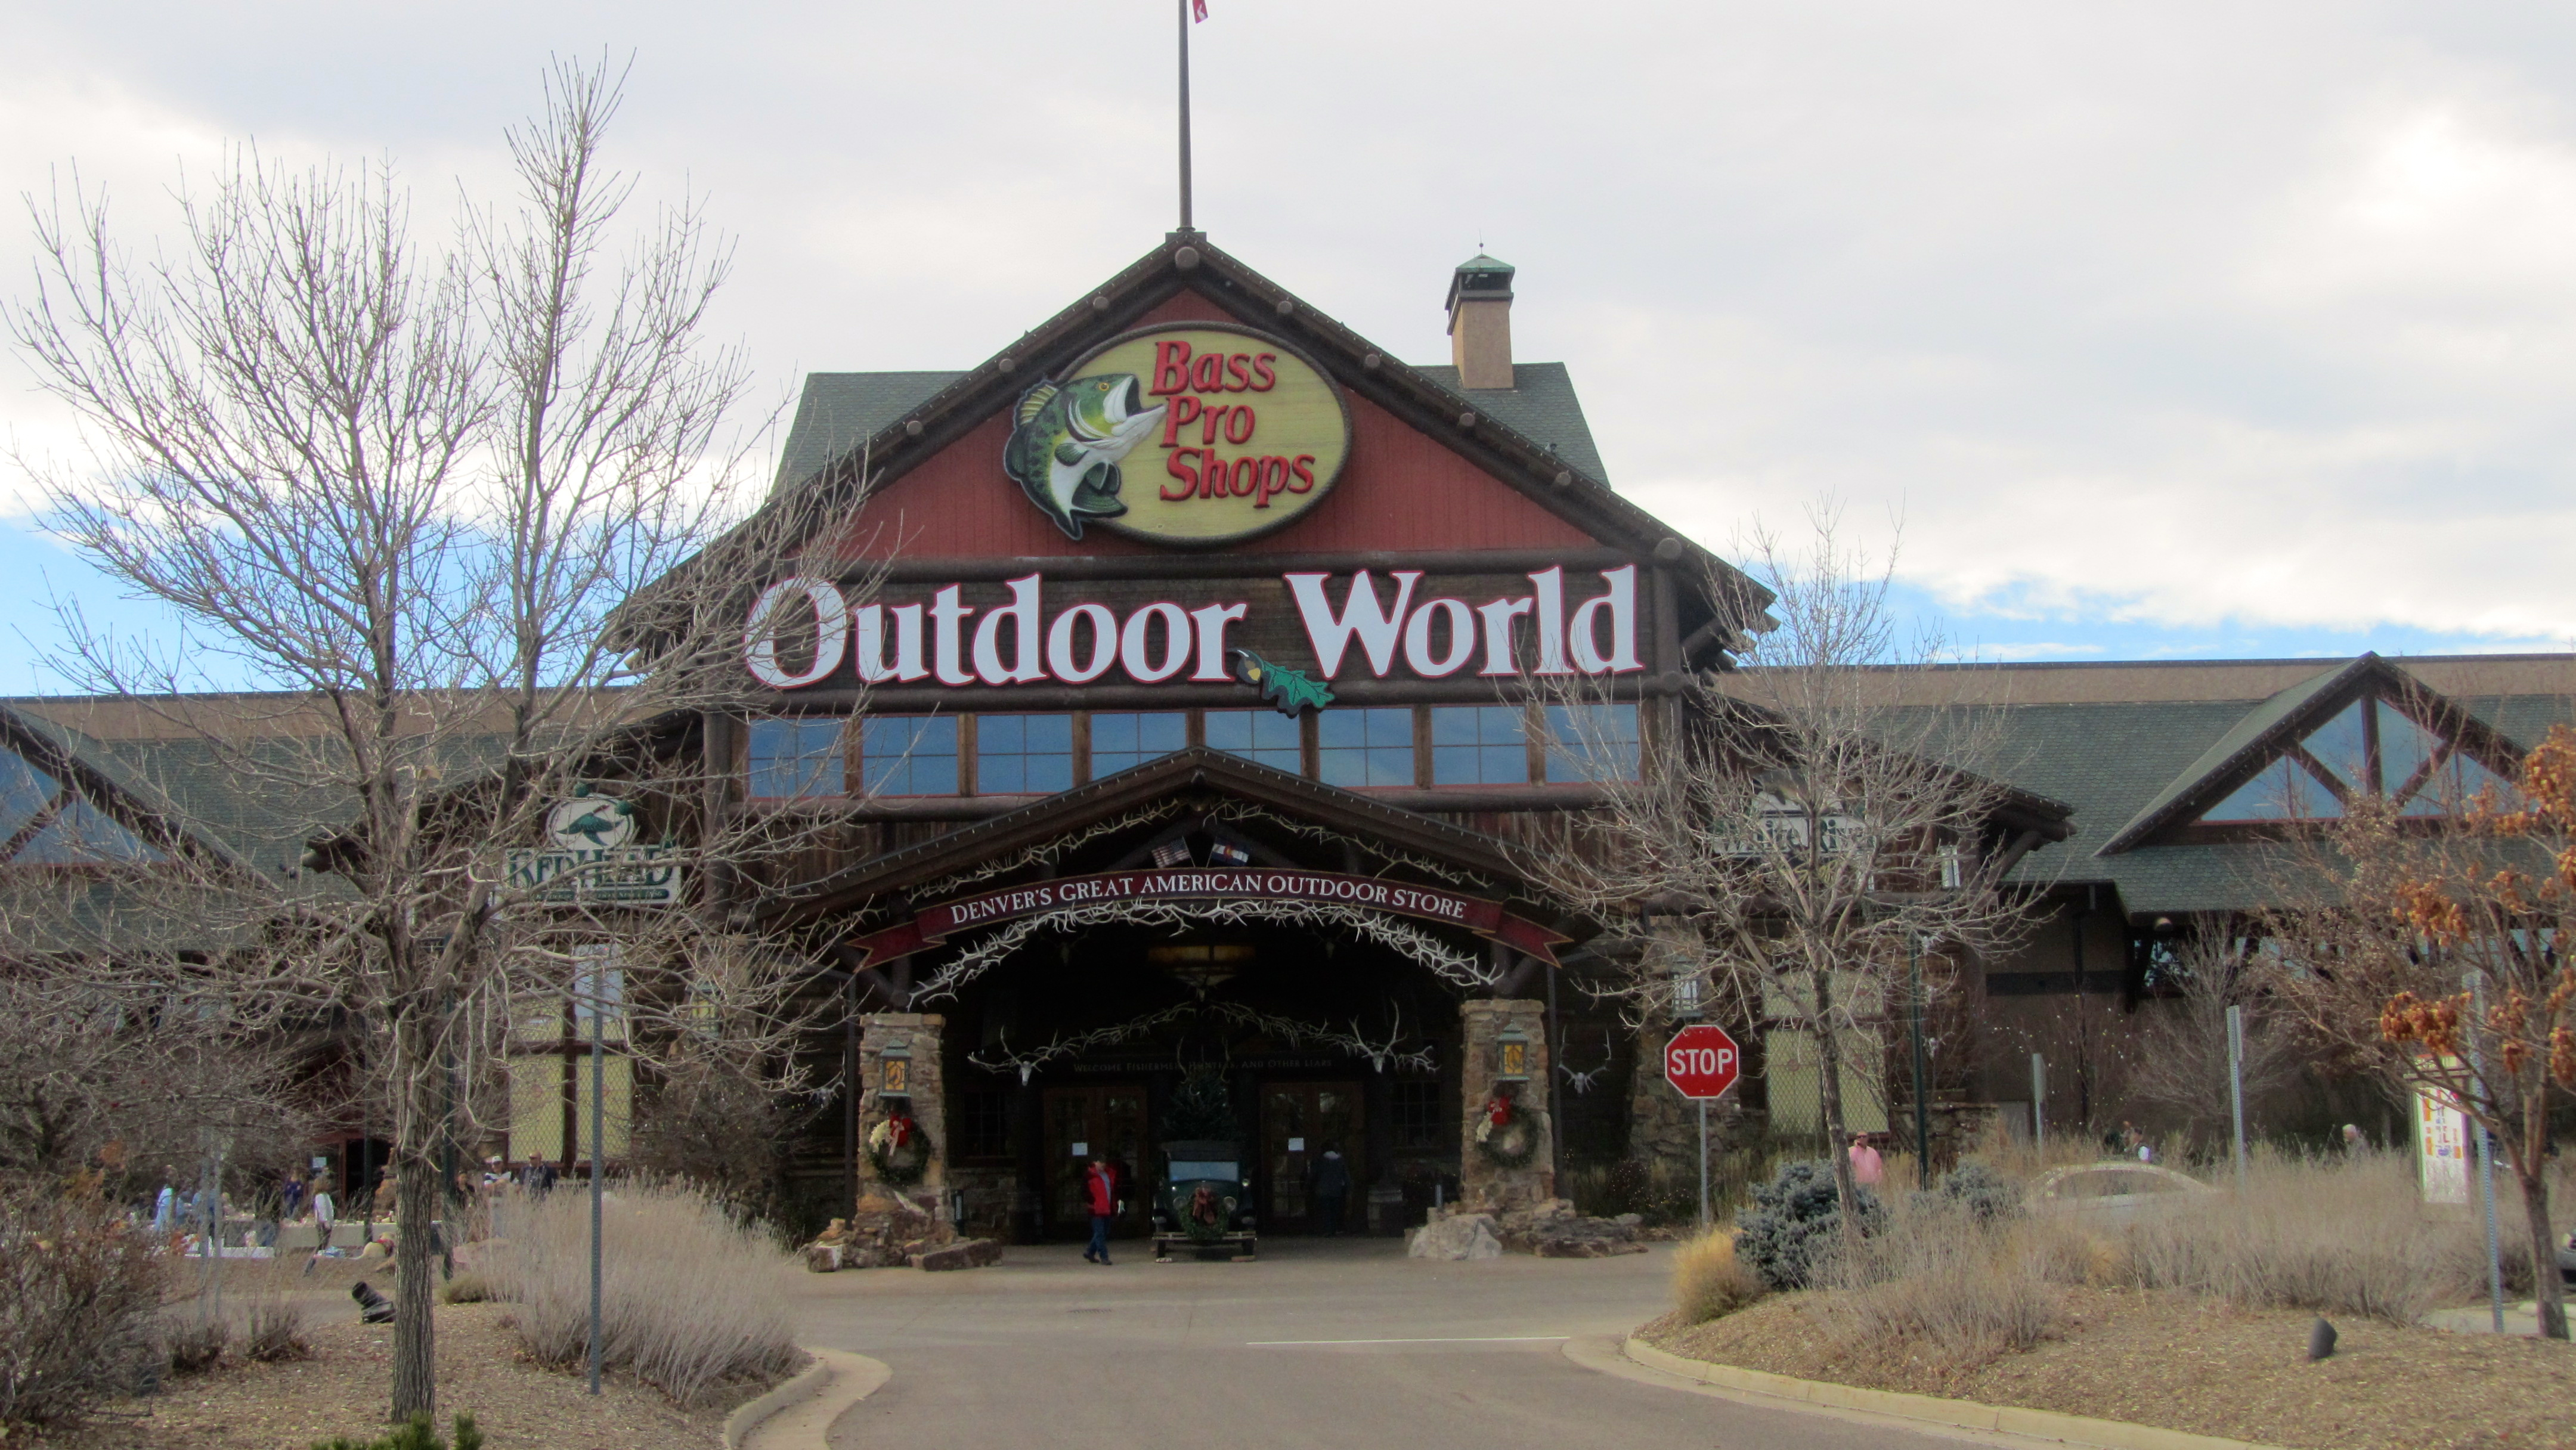 How to use a Bass Pro Shop coupon Check the top of Bass Pro Shop's homepage for current promotions, complete with coupon codes. Their sale section will also have lots of good deals as well as their outlet section, where select merchandise has been discounted by up to 50% or more.